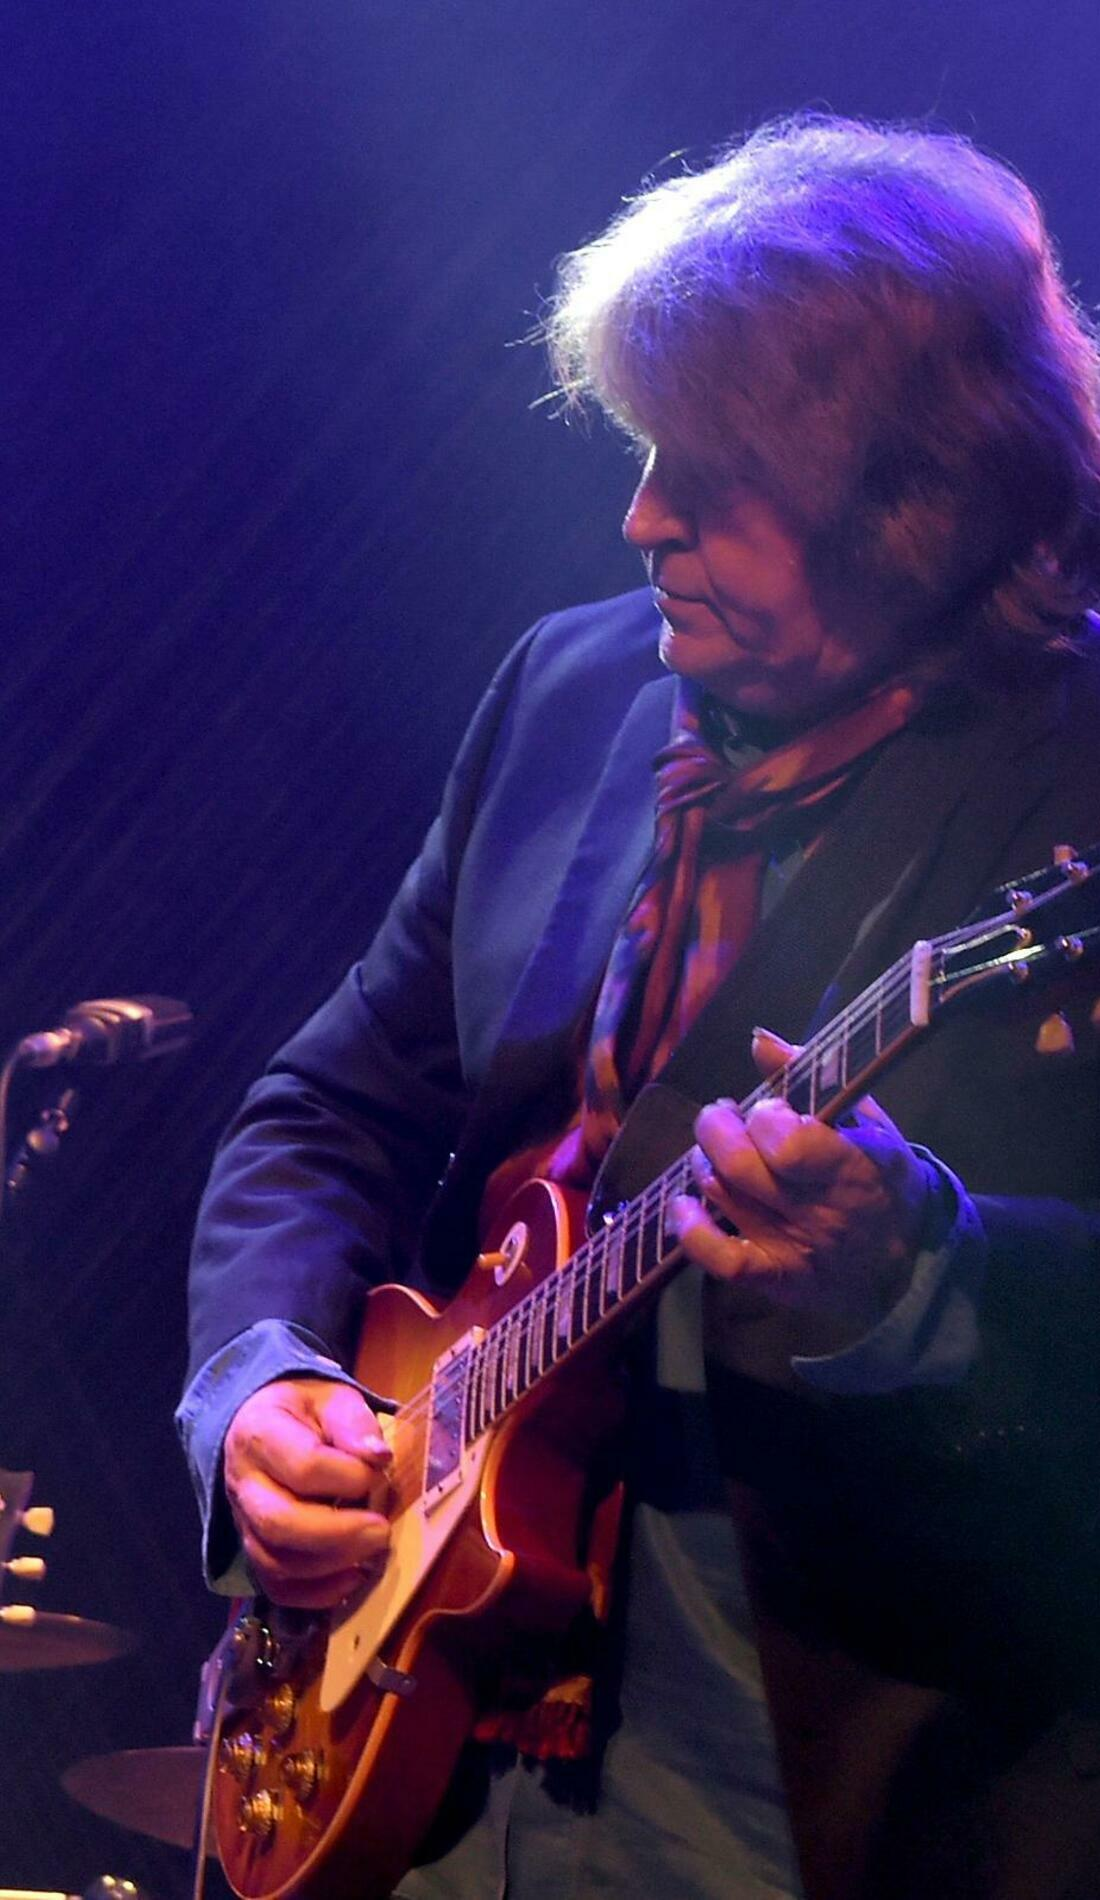 A Mick Taylor live event